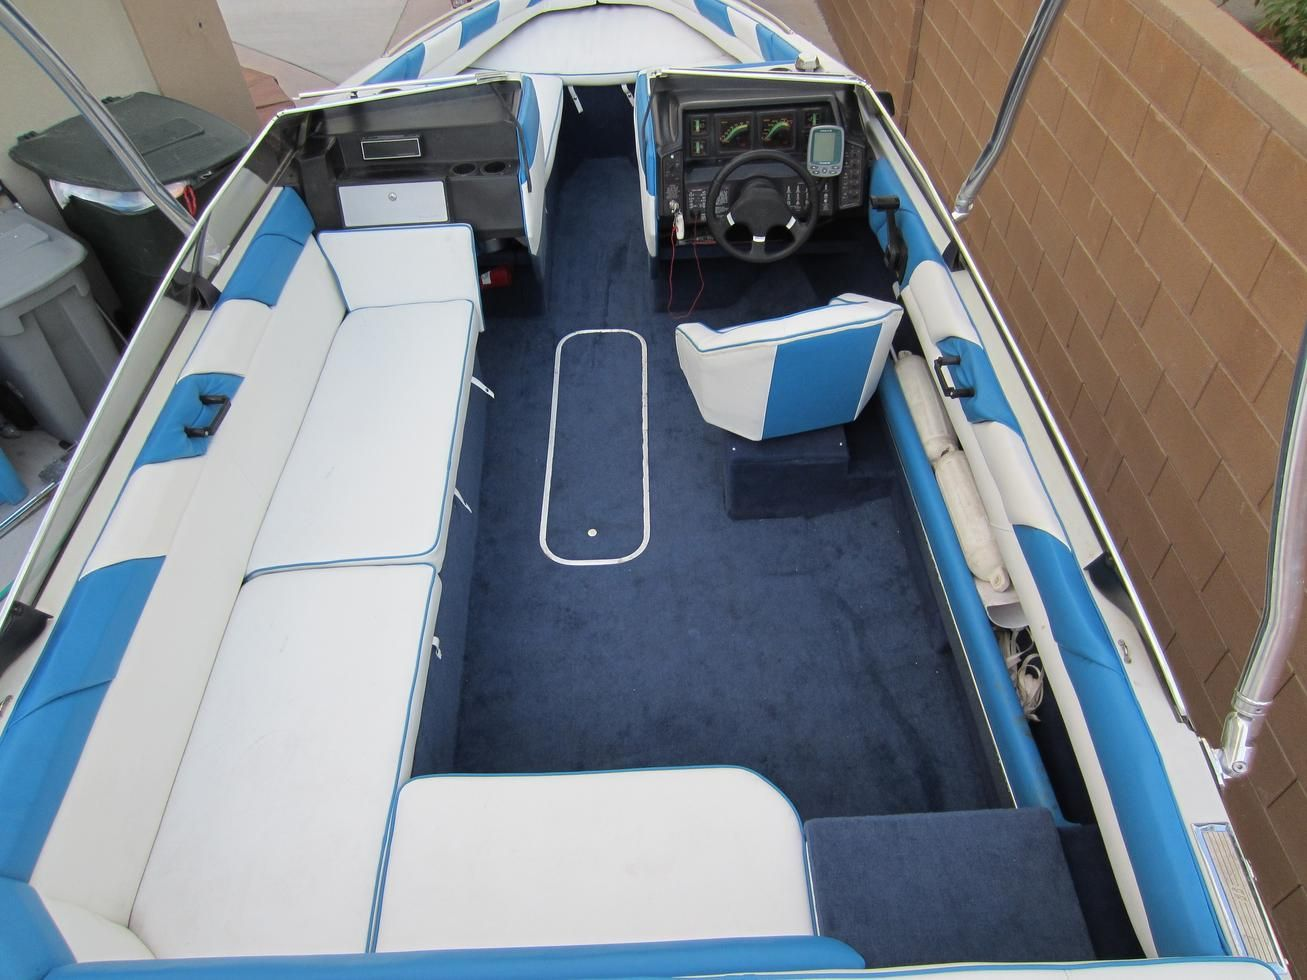 1989 bayliner capri wiring diagram electric scooter throttle with live well pics google search